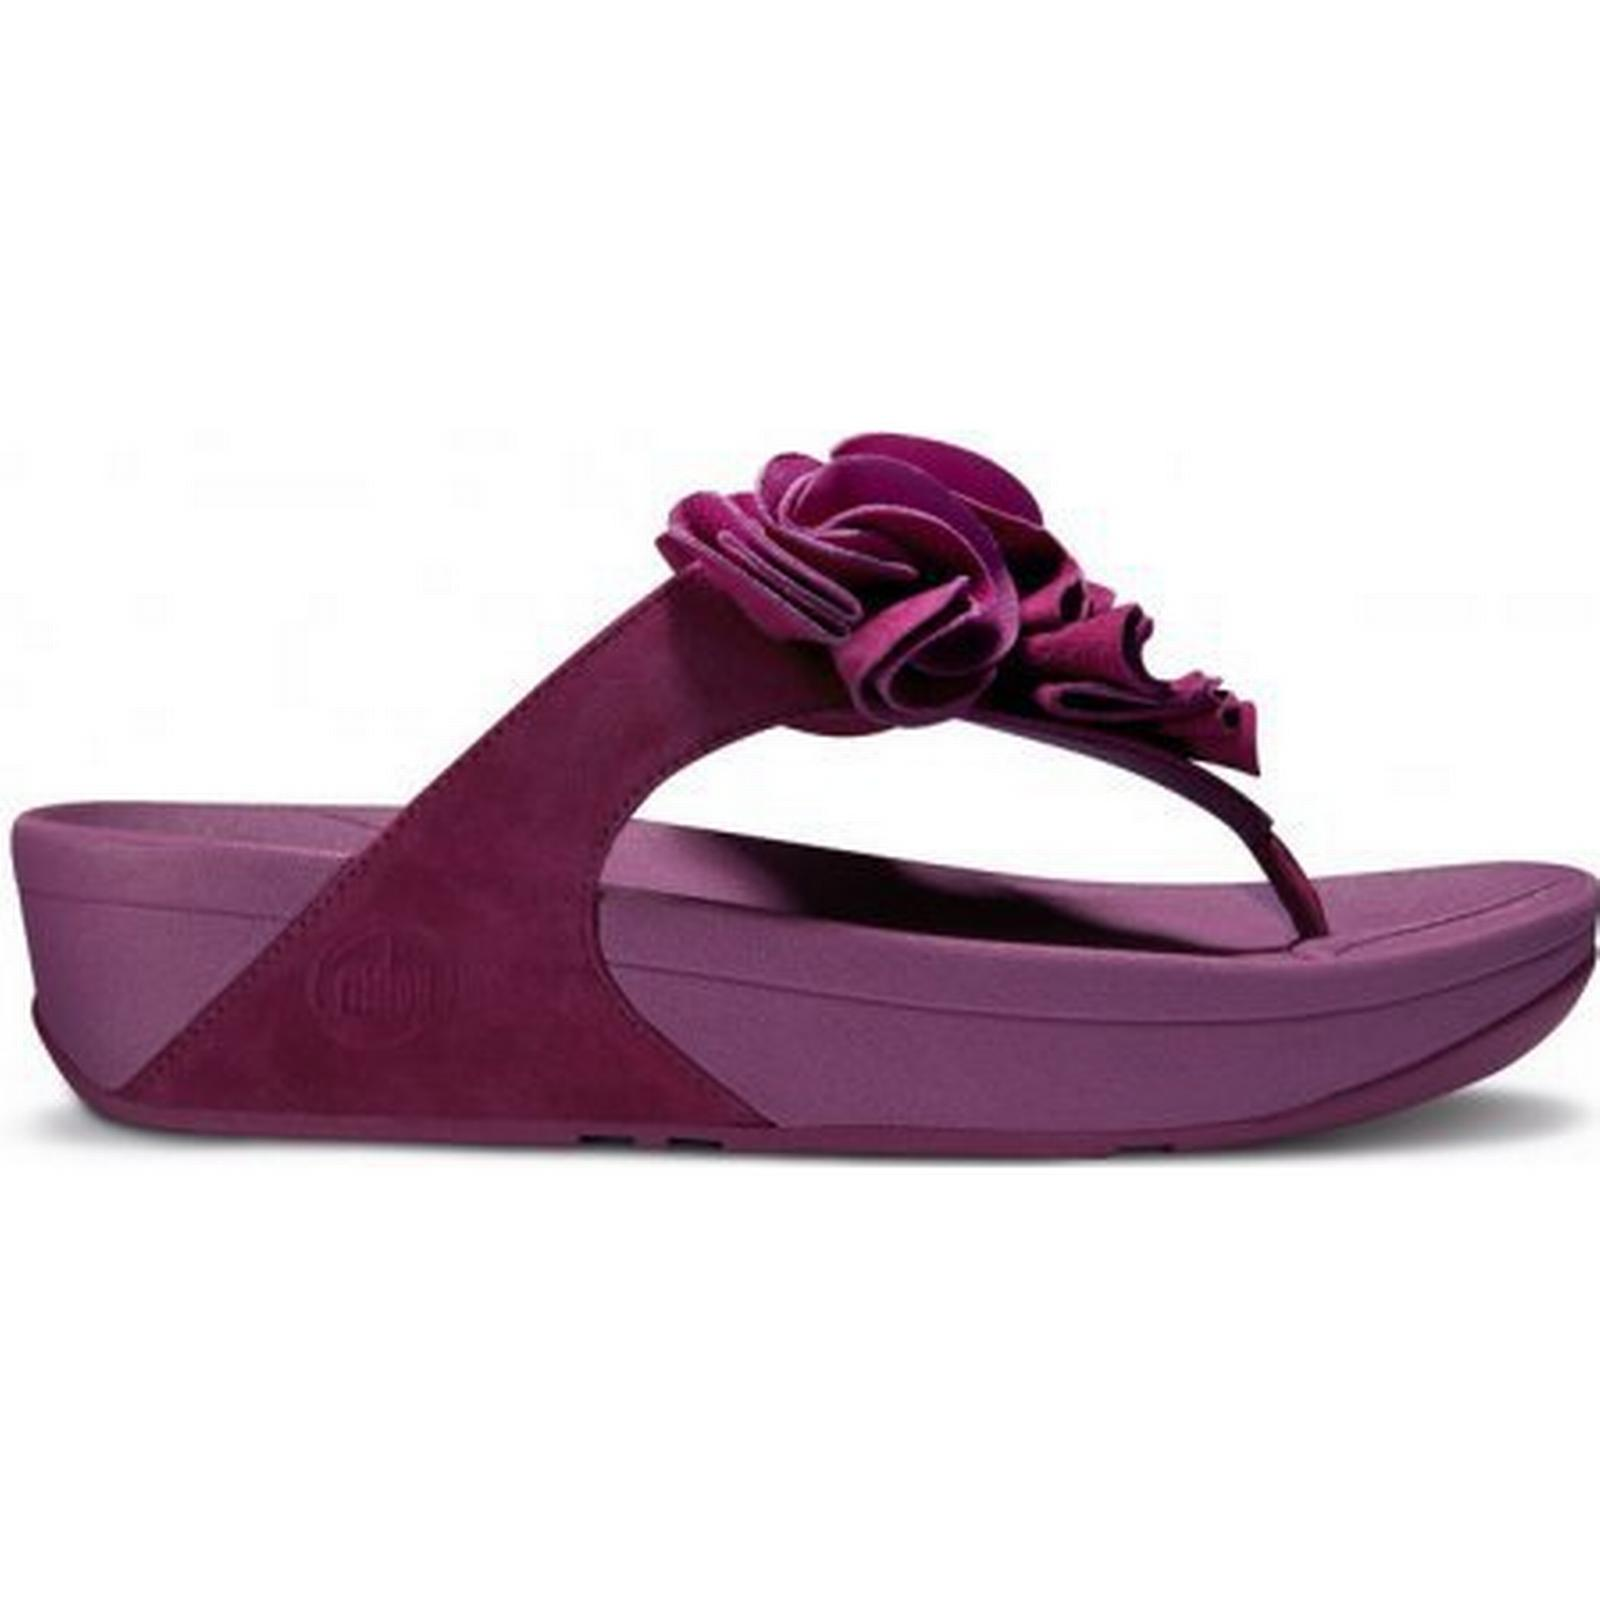 FitFlop Frou sandal womens sandal Frou in cosmic purple Size: 4, Colour: PURPLE 6f37d7